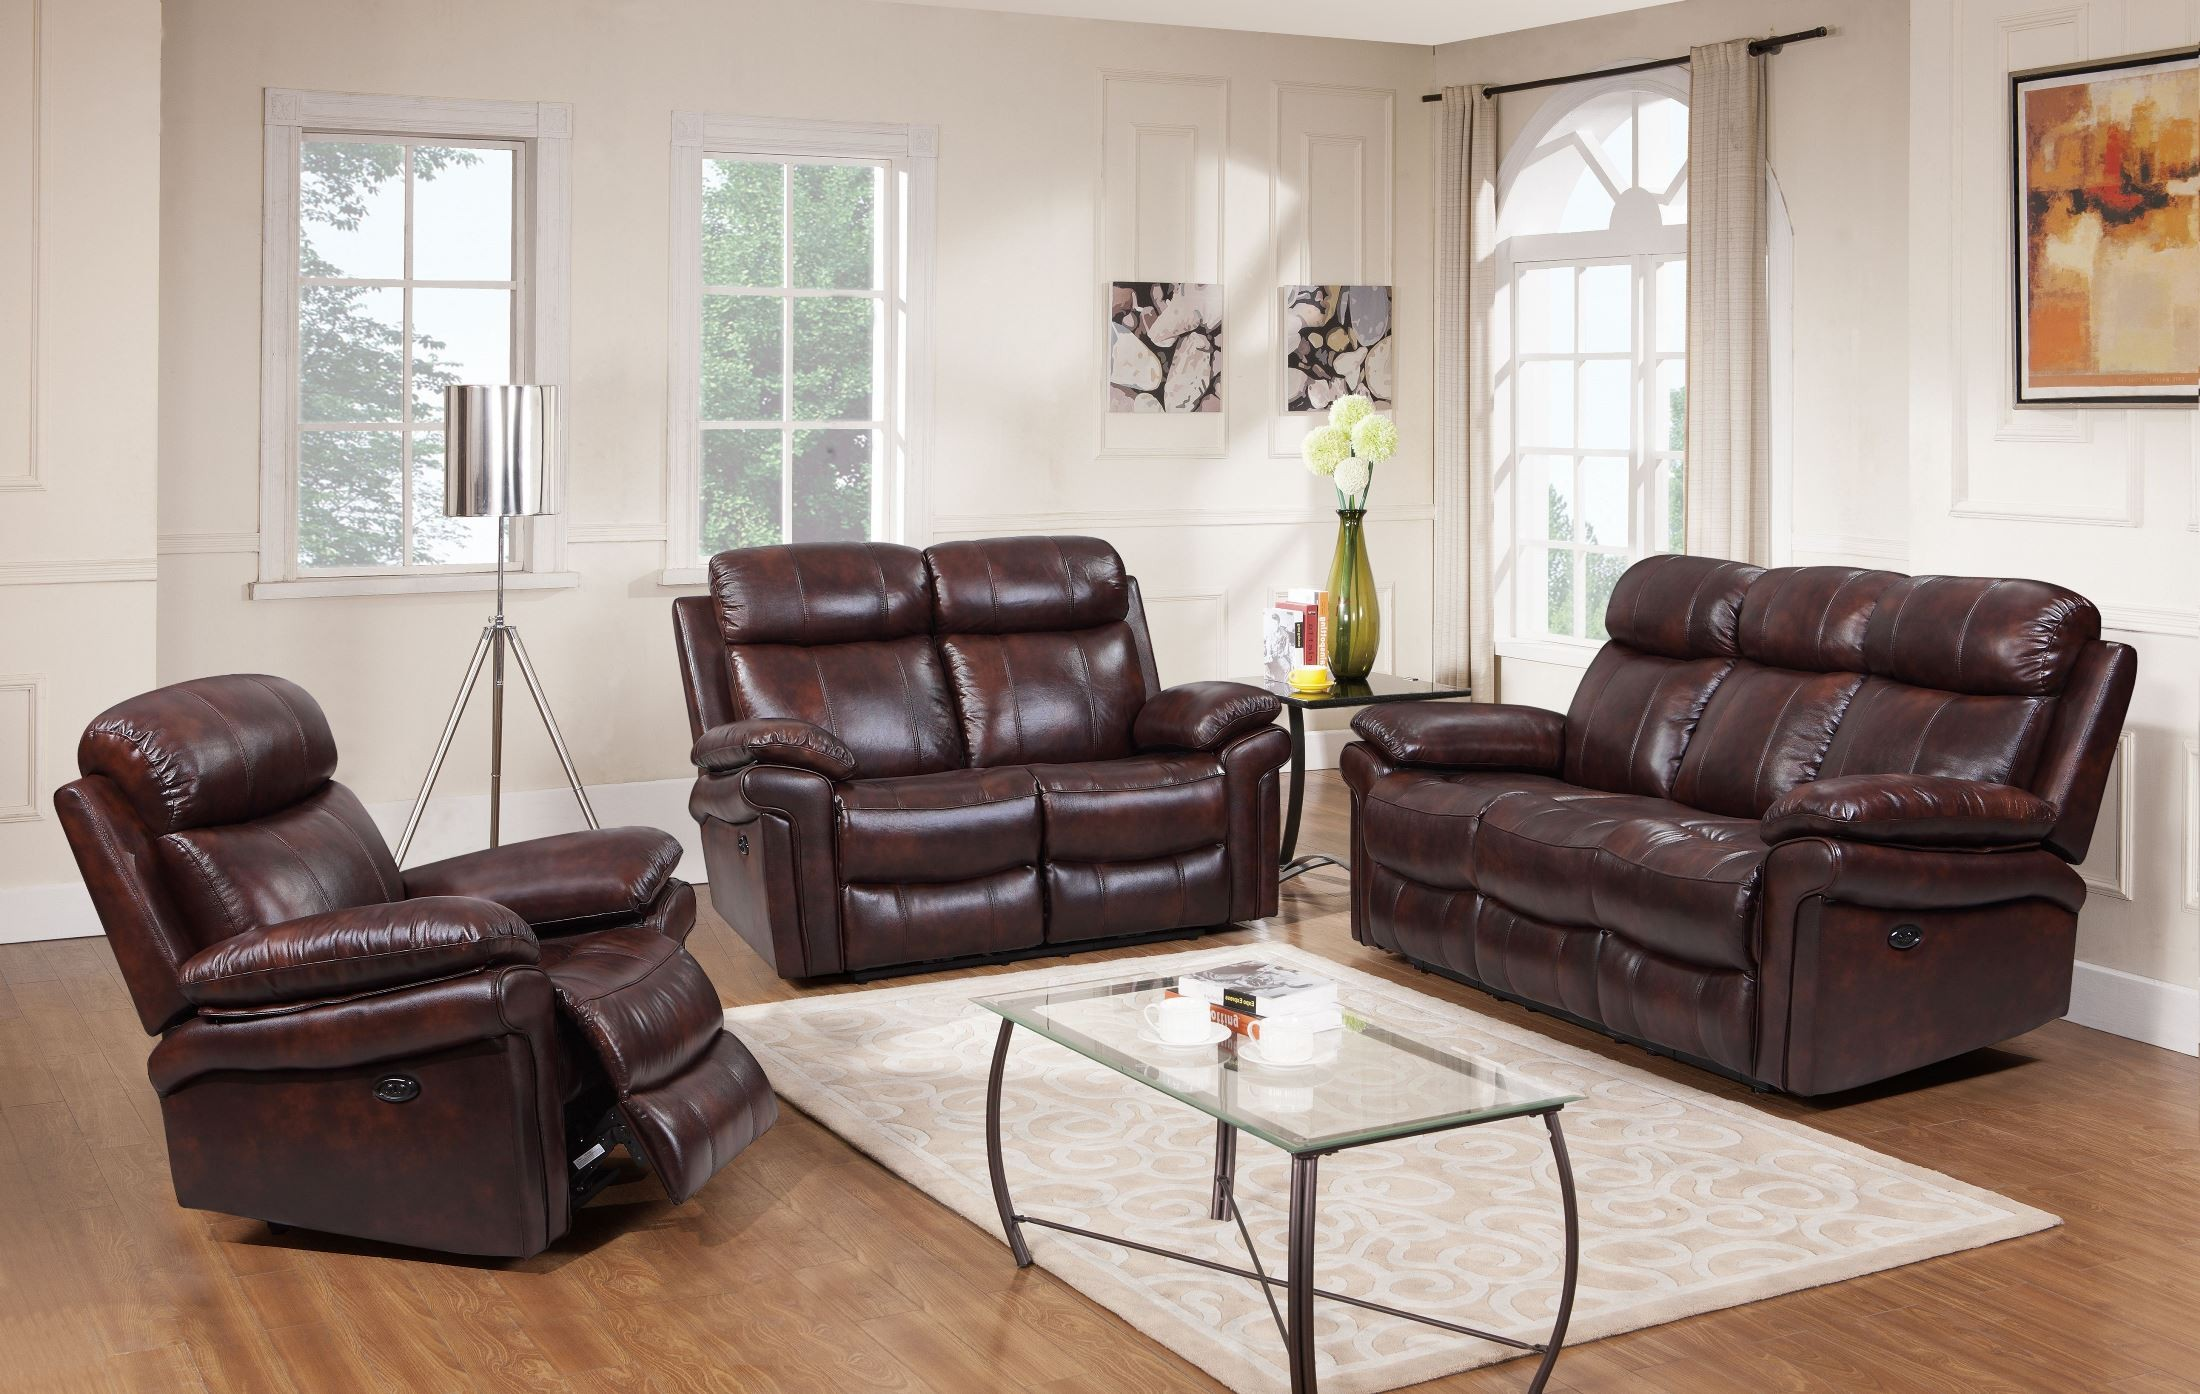 Shae joplin brown leather power reclining living room set for Brown living room furniture